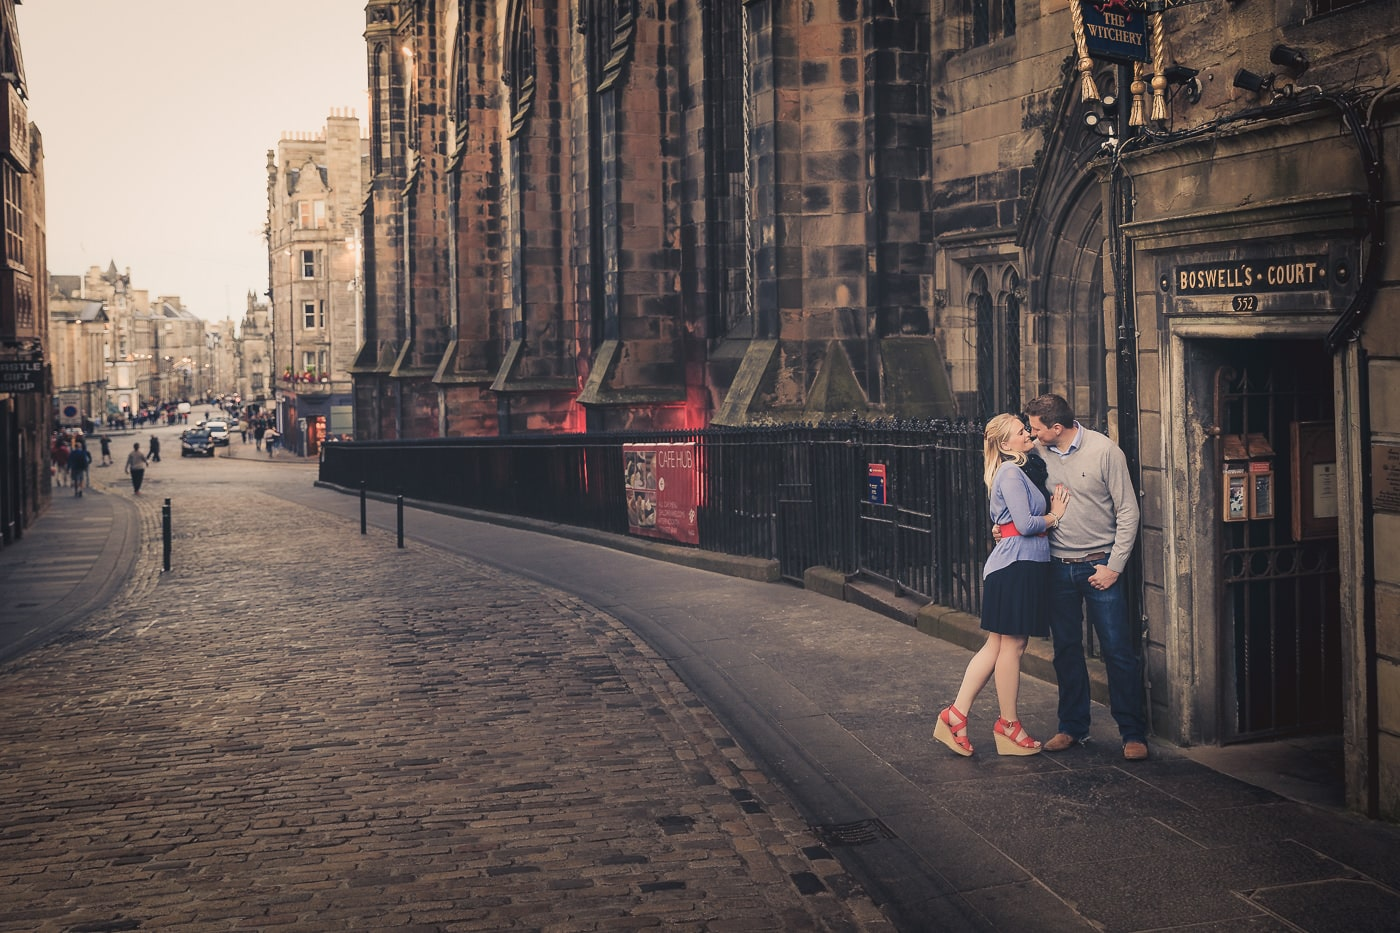 The lovebirds are on the royal mile in Edinburgh